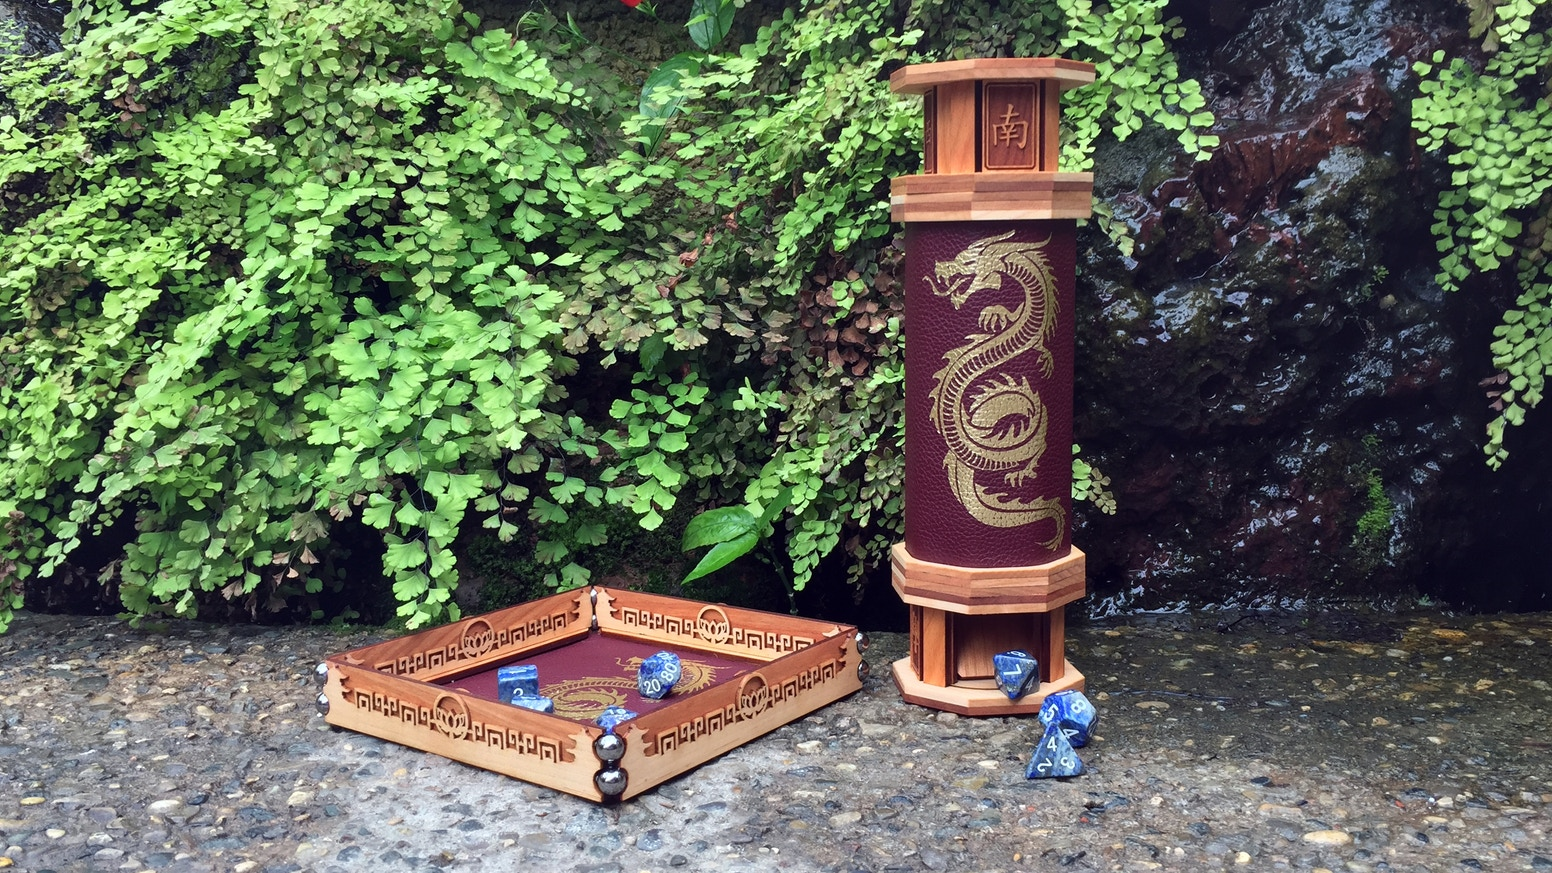 A bespoke, leather-bound scroll case that transforms into a dice tower with a scroll that unrolls into a rolling tray